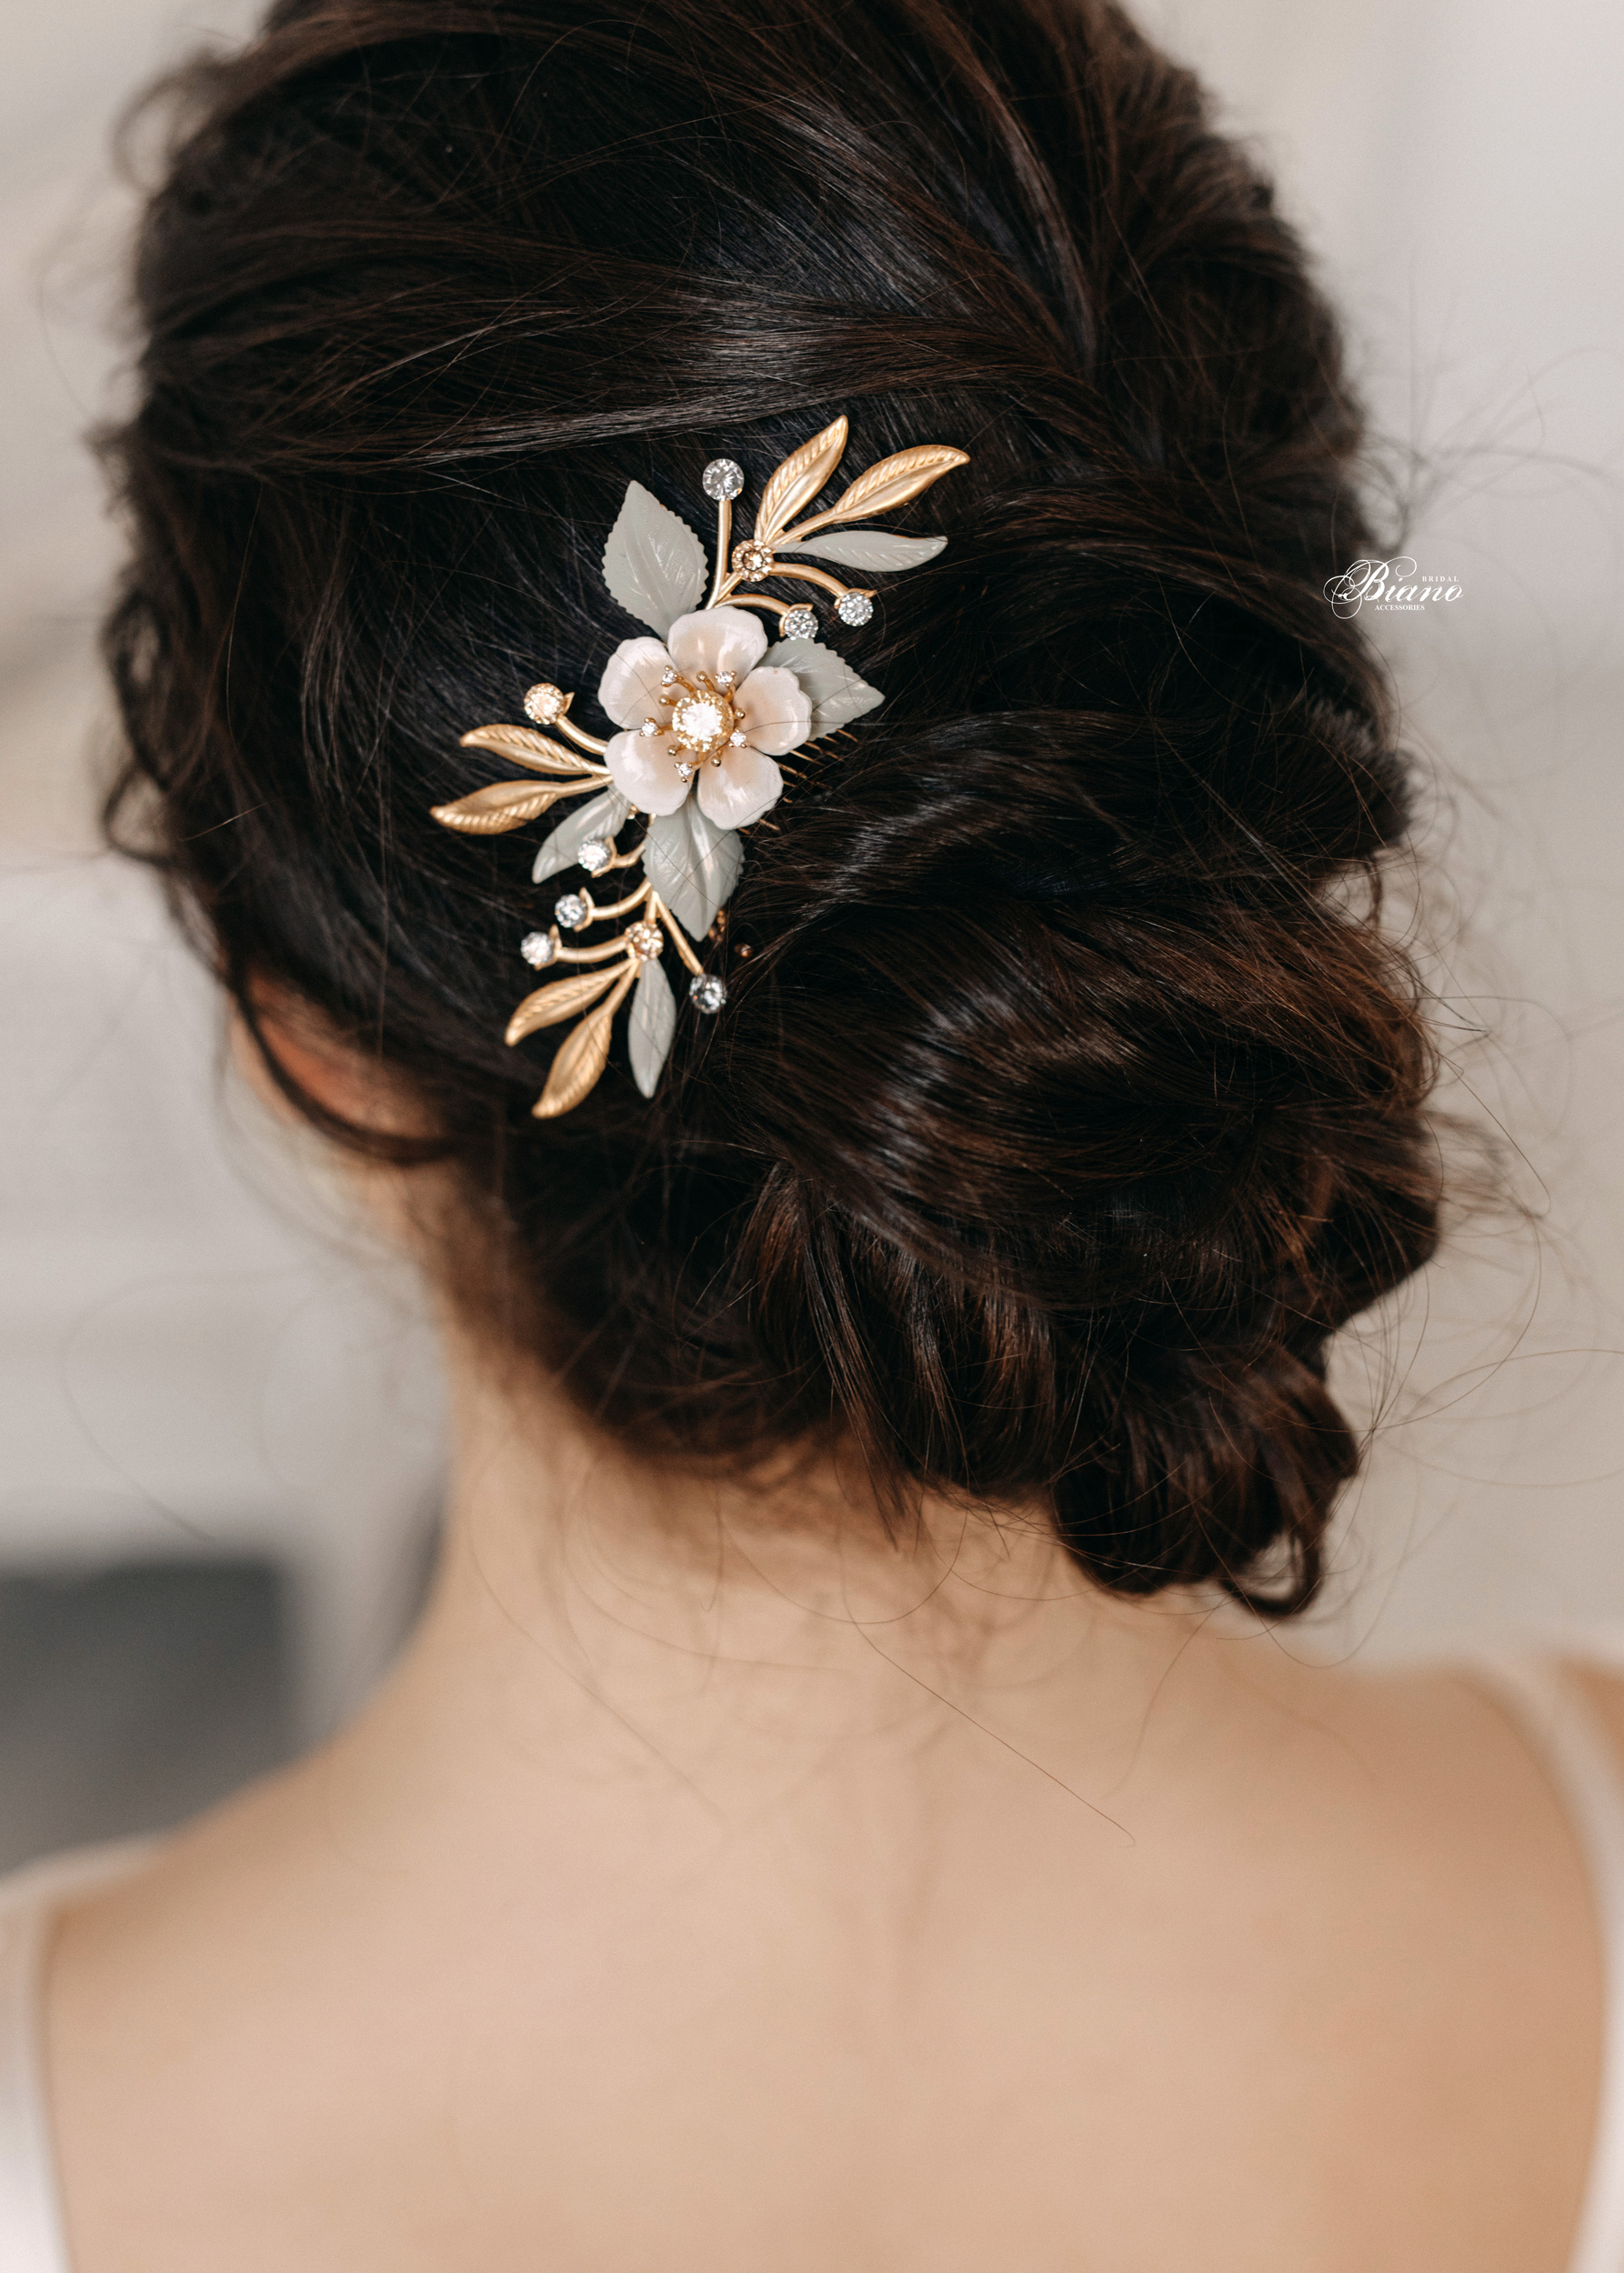 Find your perfect Wedding Hair Combs - Handmade in SwitzerlandUnique DesignPossibility to Rush OrdersFree Shipping WorldwideCustomisable OrdersFast response on your questions